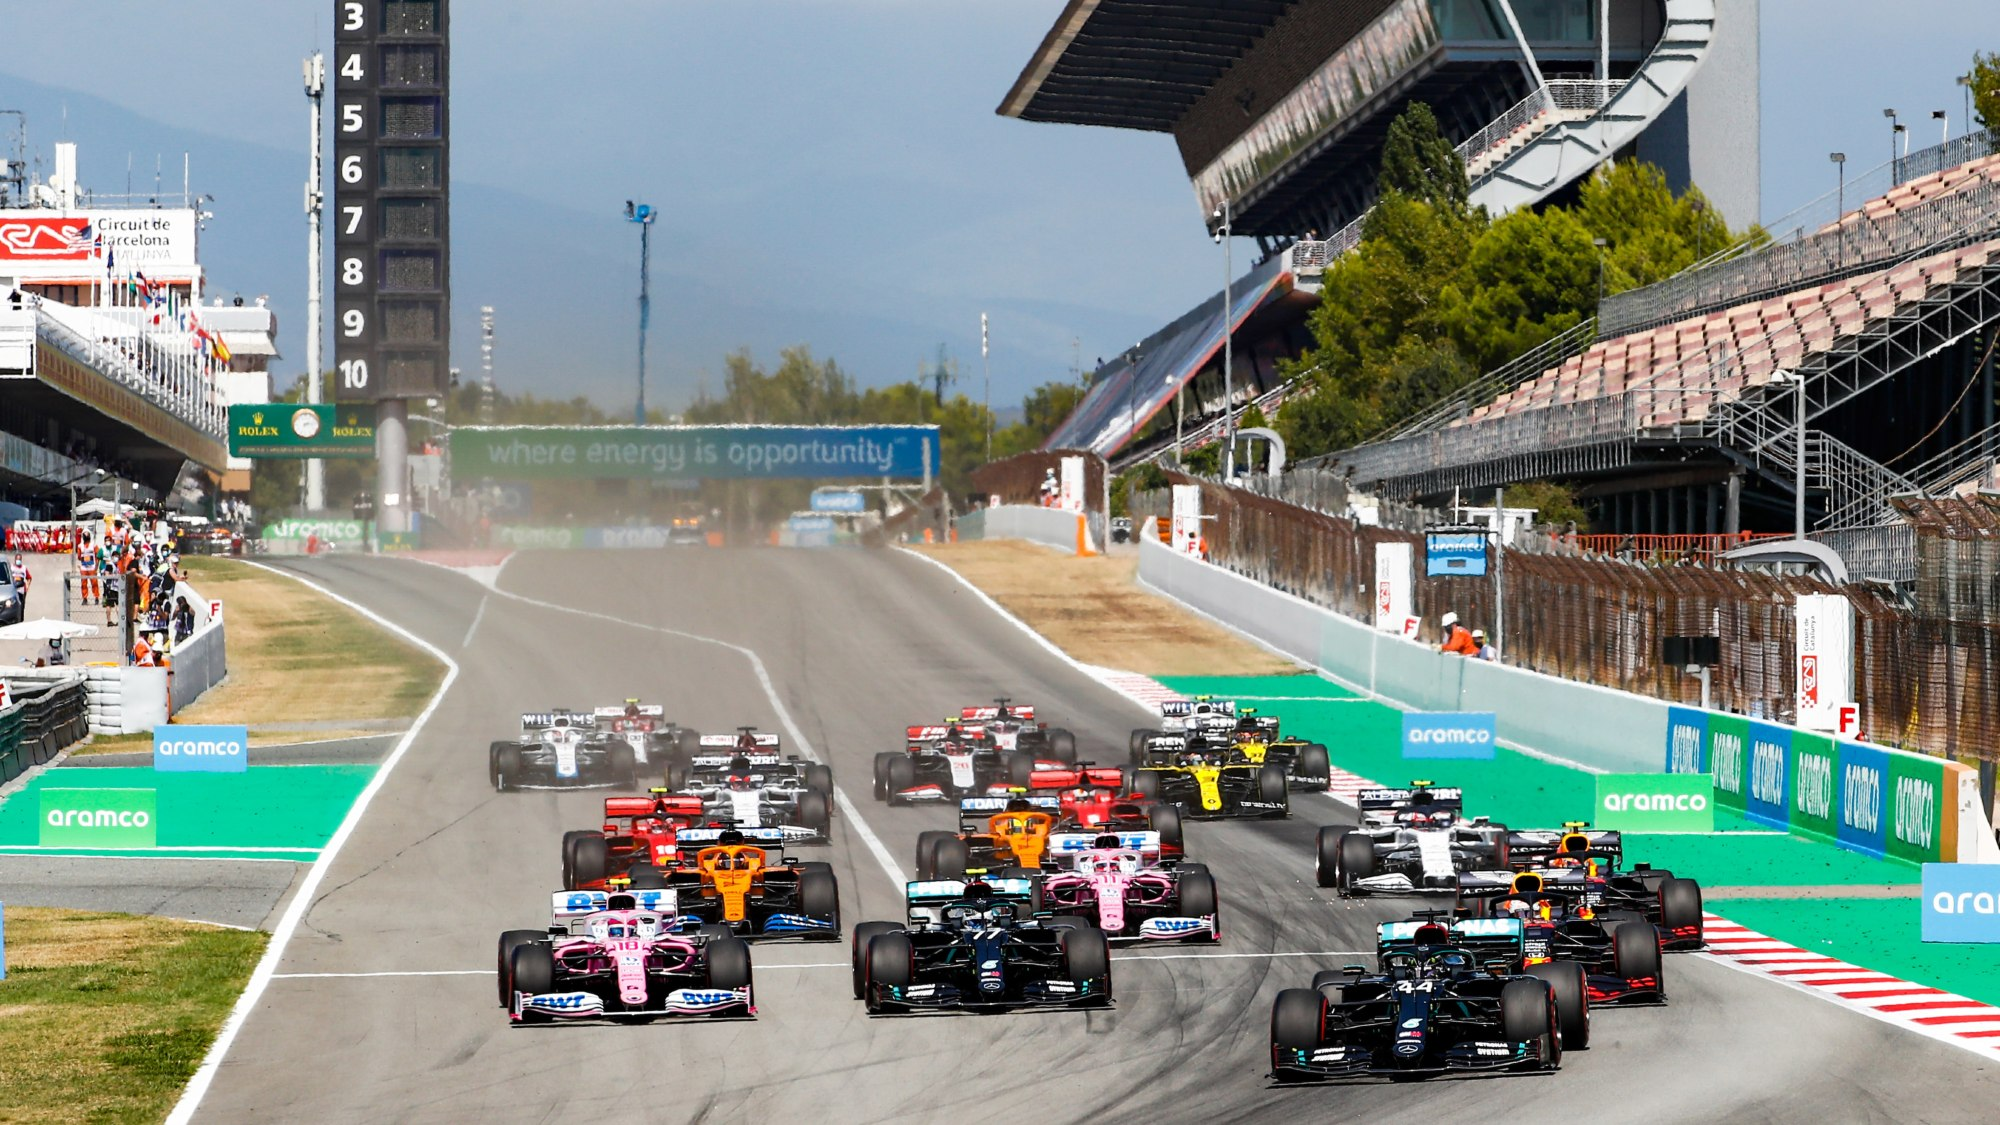 2021 Spanish Grand Prix: what to watch for